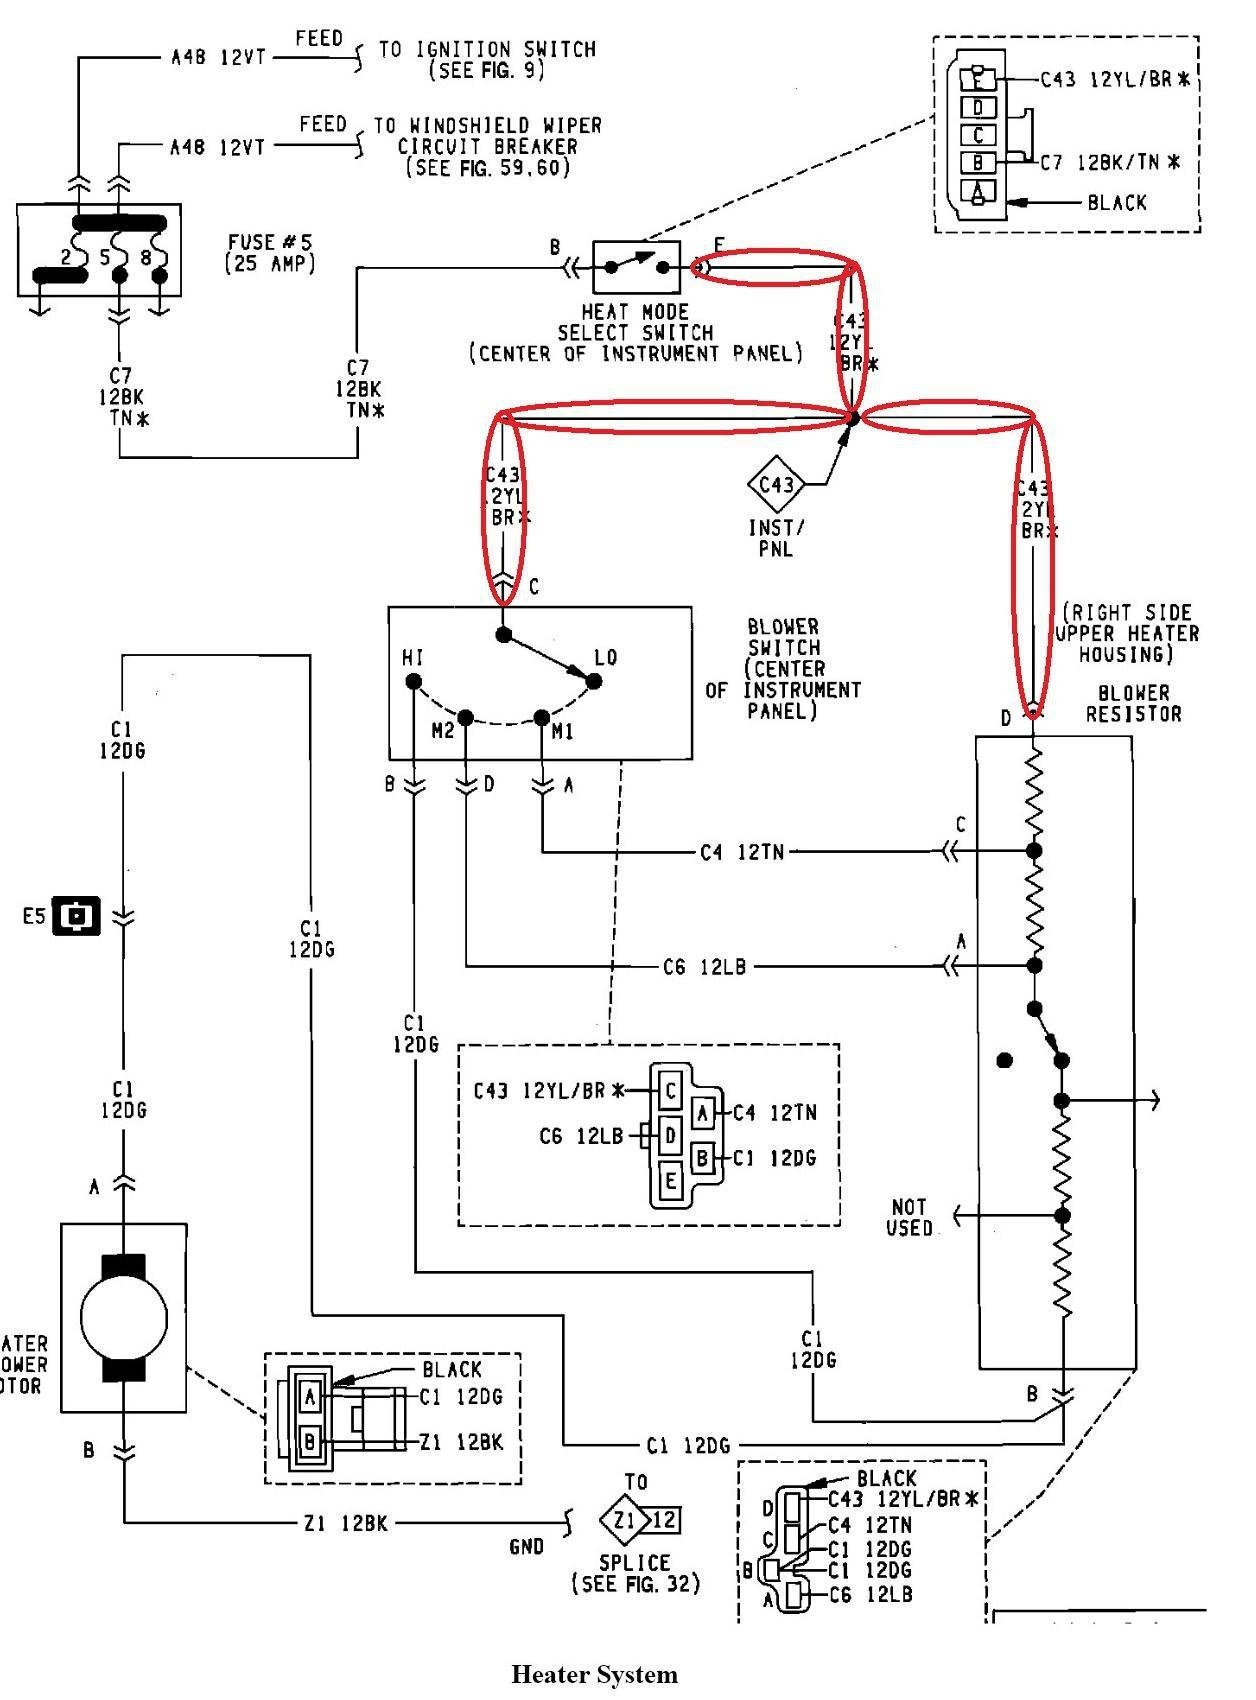 hight resolution of wiring diagram ezgo 36 volt wiring diagram expert ezgo 36 volt battery diagram ezgo circuit diagrams